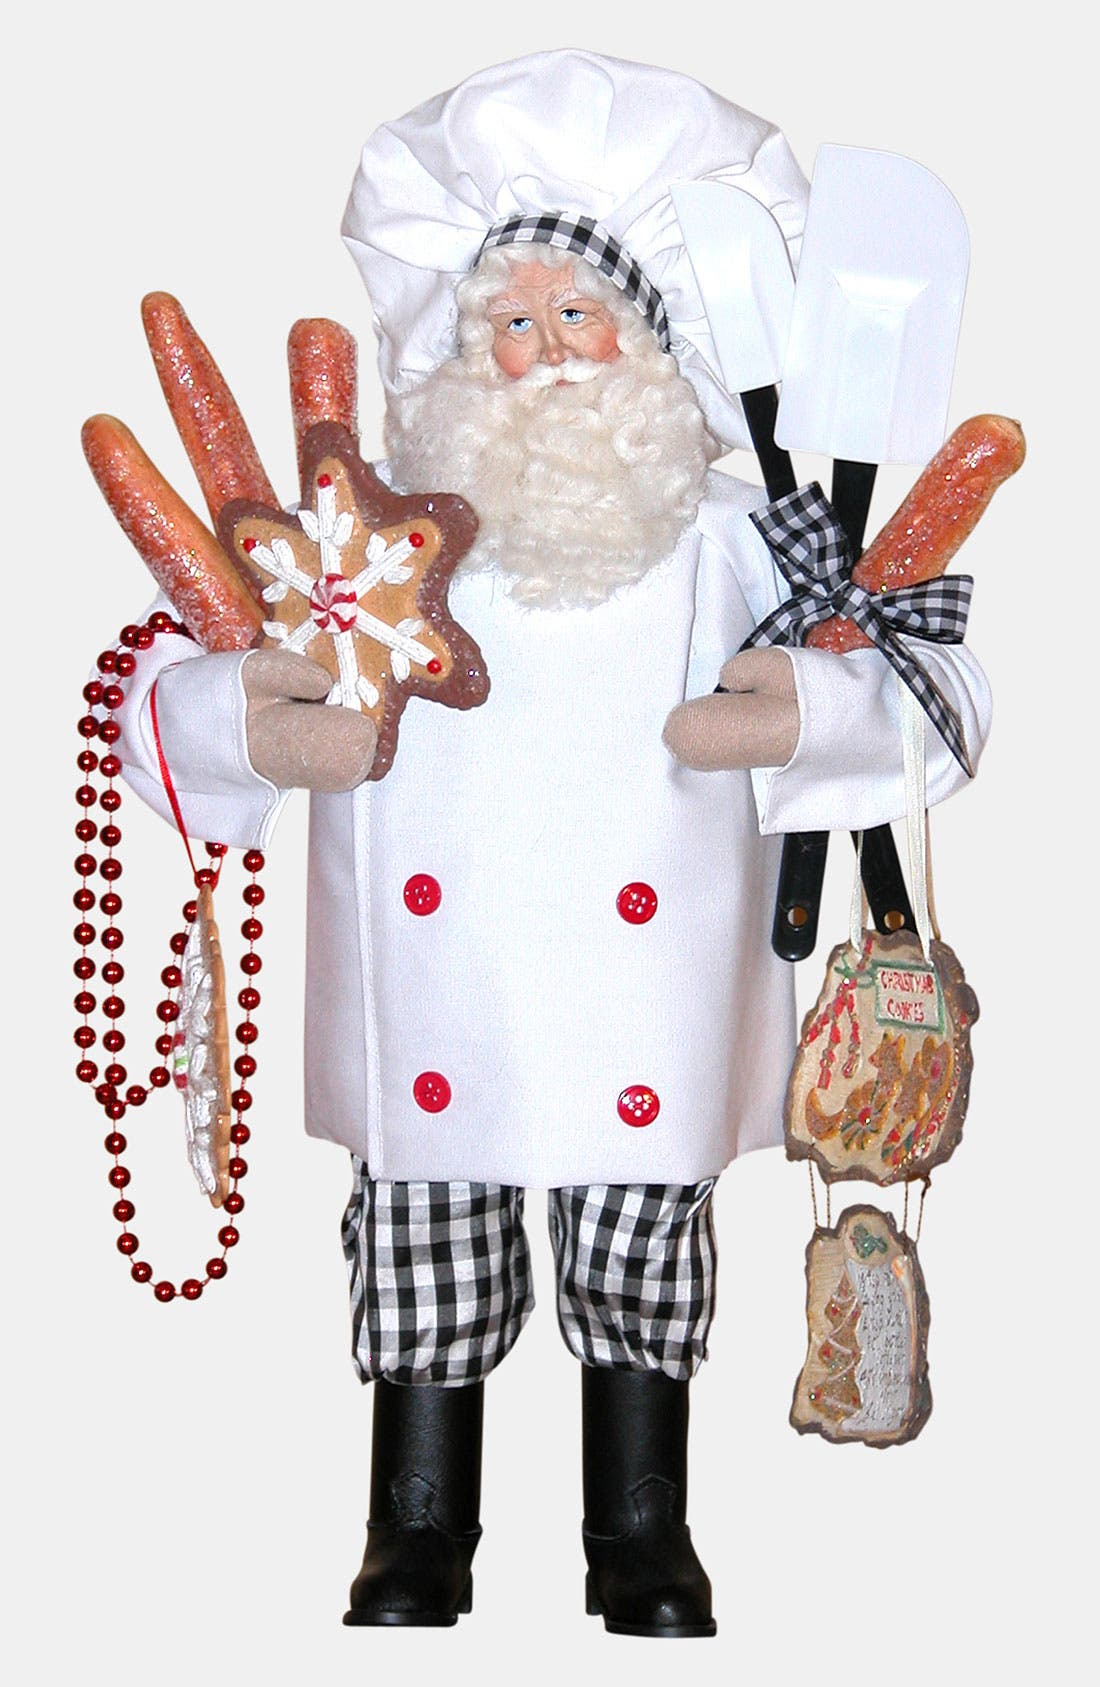 Alternate Image 1 Selected - Lynn Haney 'Sugared Delights' Santa Figurine (Nordstrom Exclusive)